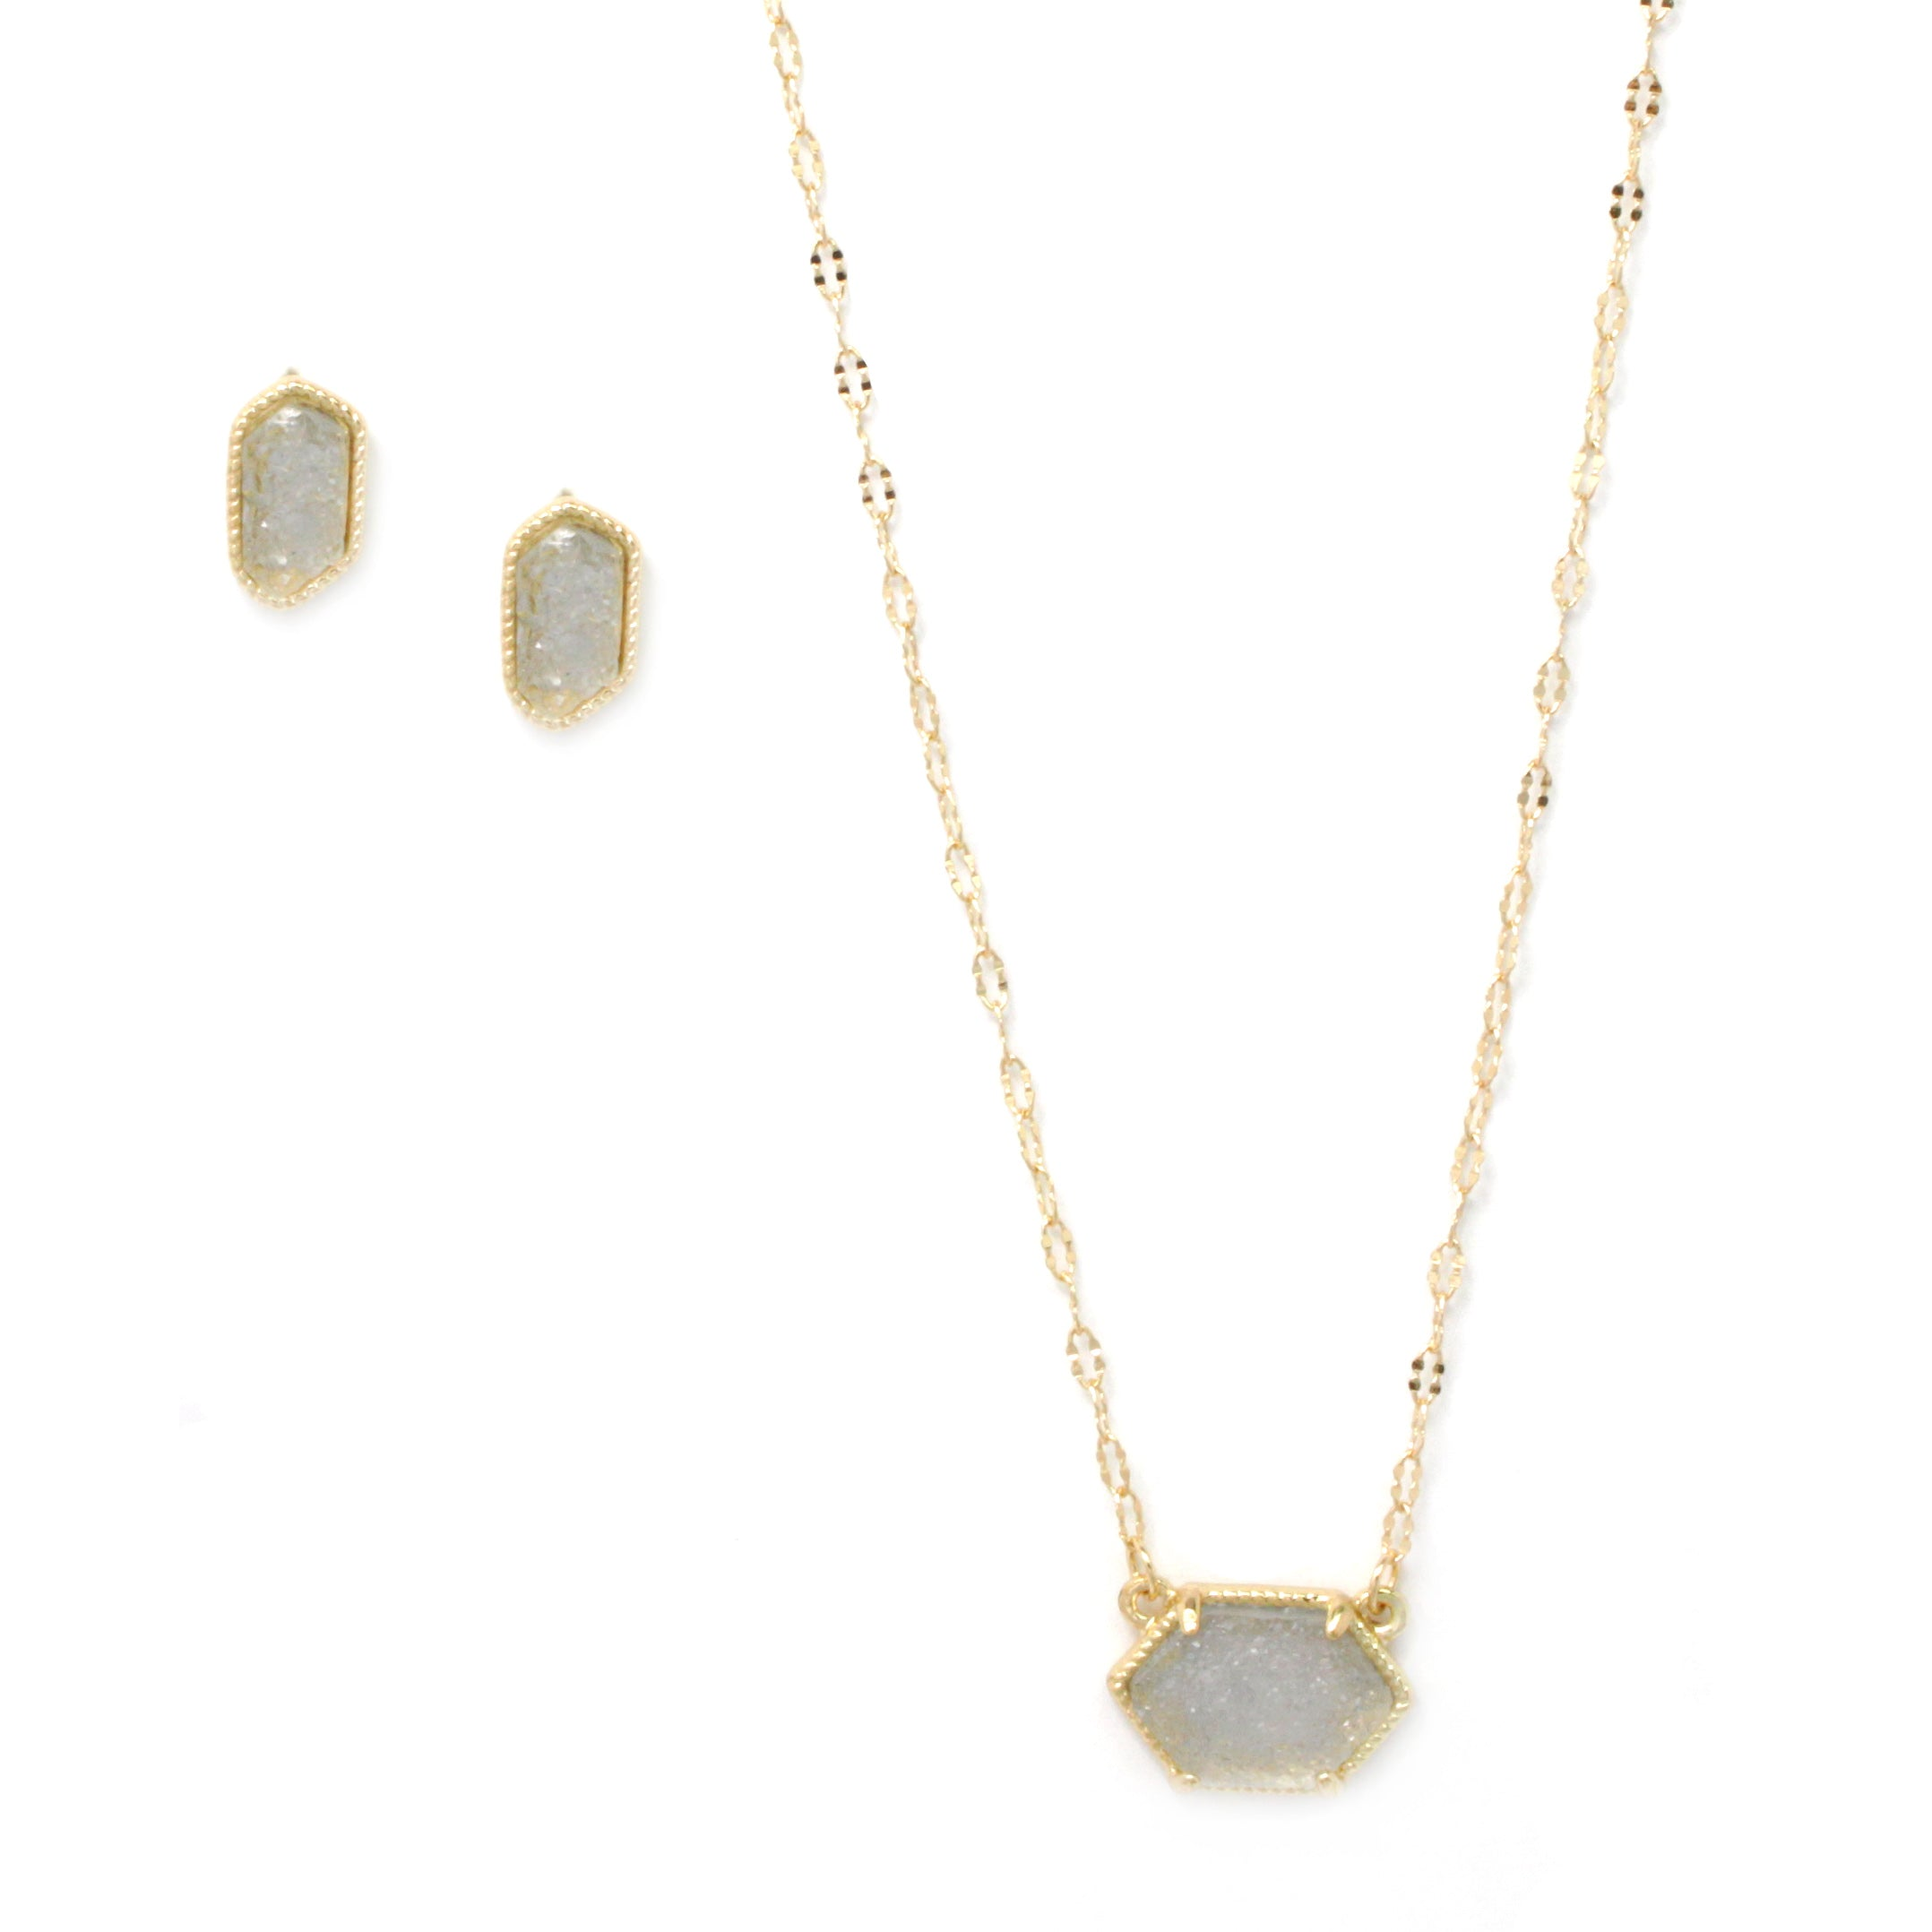 Druzy Geode Natural Stone Pendant Necklace Set